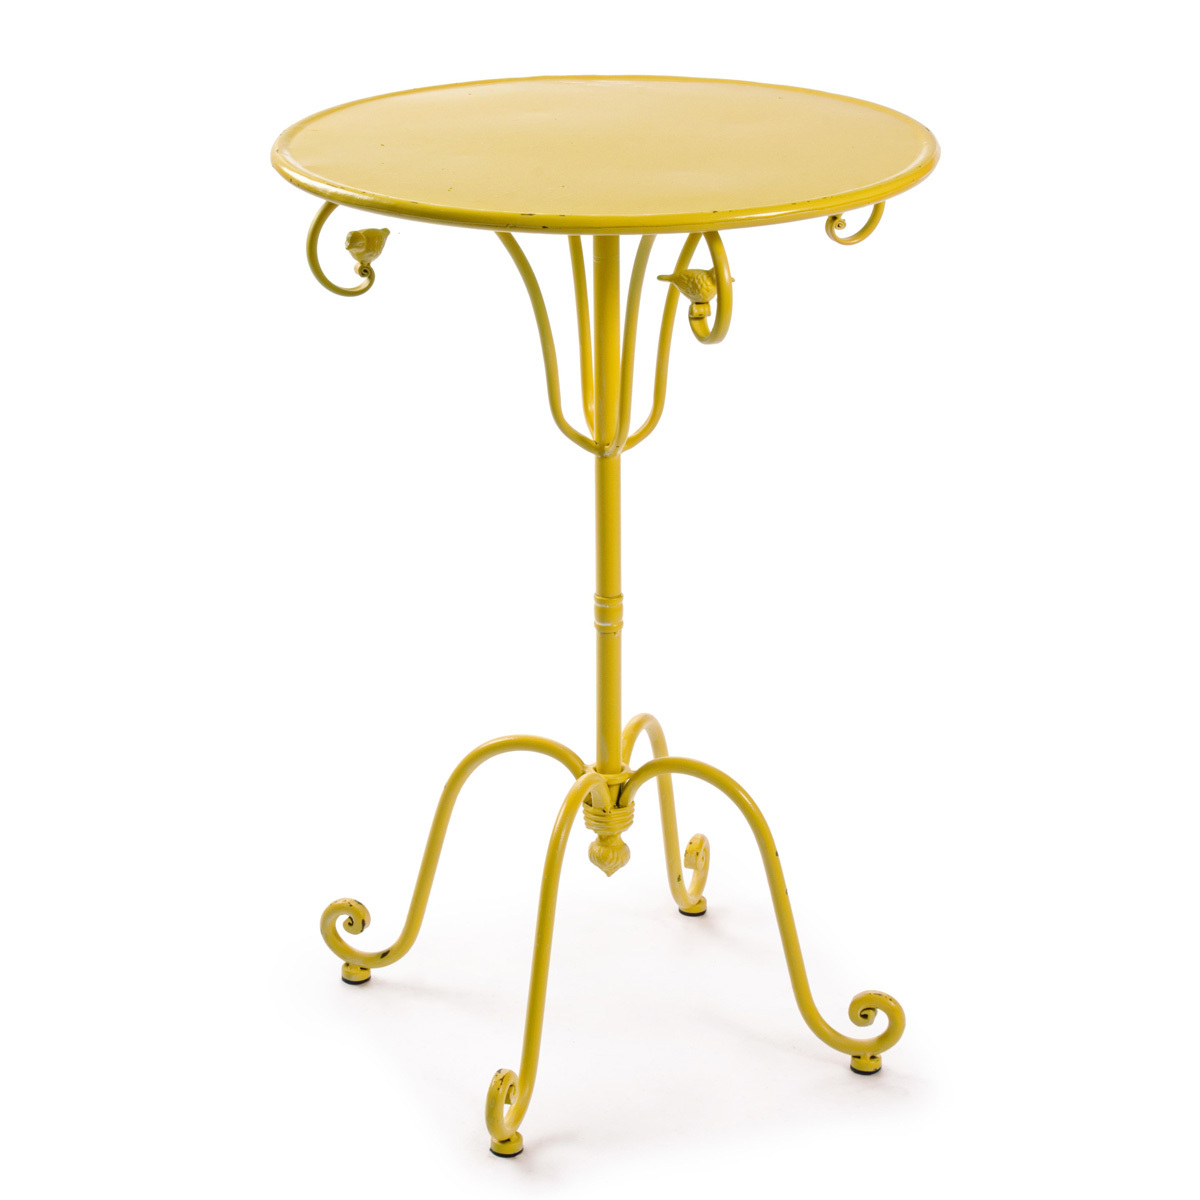 Photos 1: Bizzotto Metal table d. 51 - yellow 0740151